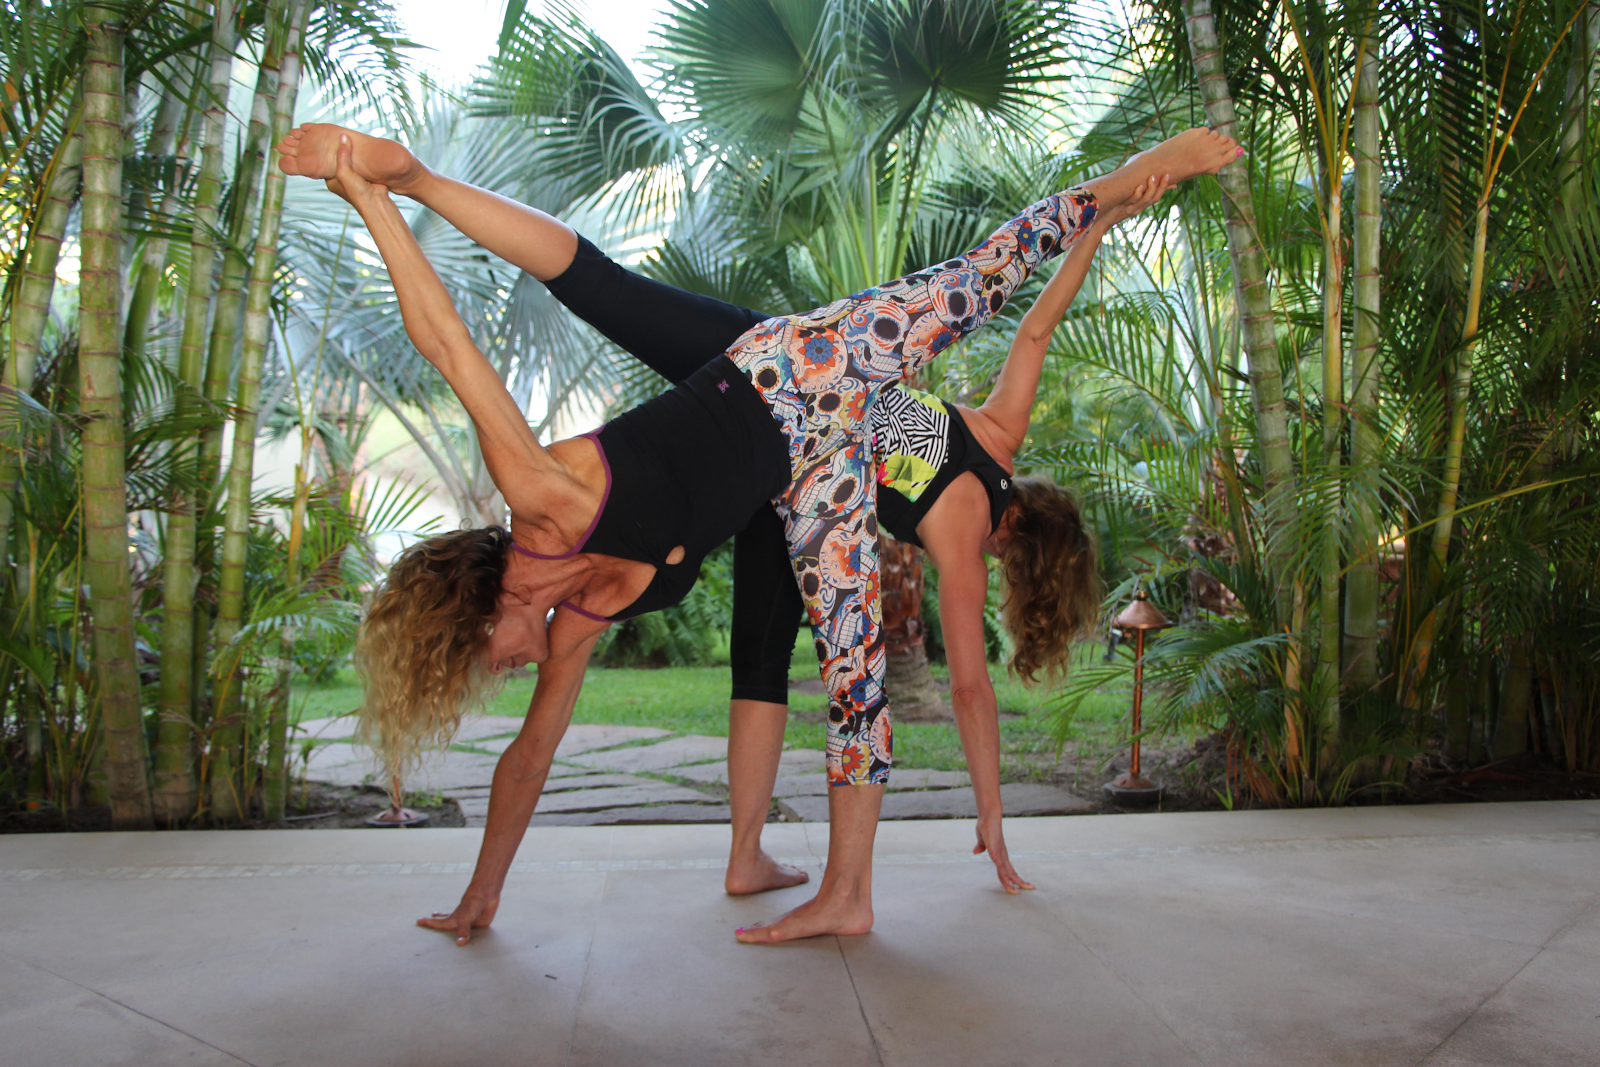 Tonyah doing yoga with a friend